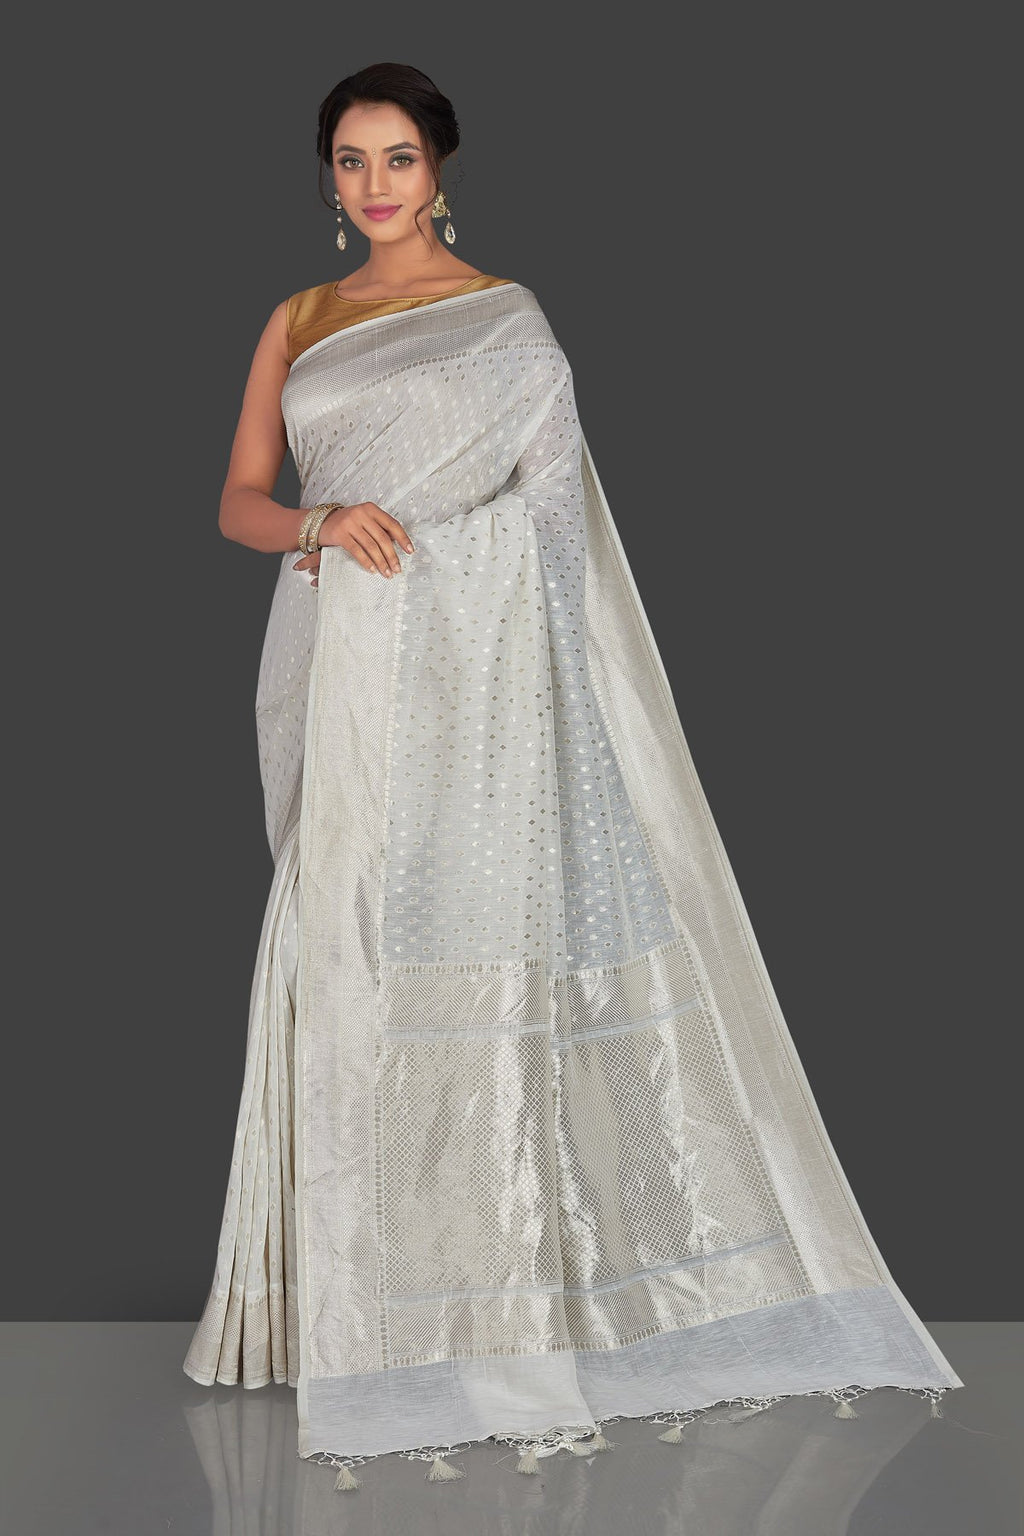 Buy white tussar georgette Banarasi saree online in USA with silver zari border. Radiate elegance with handloom sarees with blouse, tussar silk sarees, Banarsi sarees from Pure Elegance Indian fashion boutique in USA. We bring a especially curated collection of ethnic saris for Indian women in USA under one roof!-full view